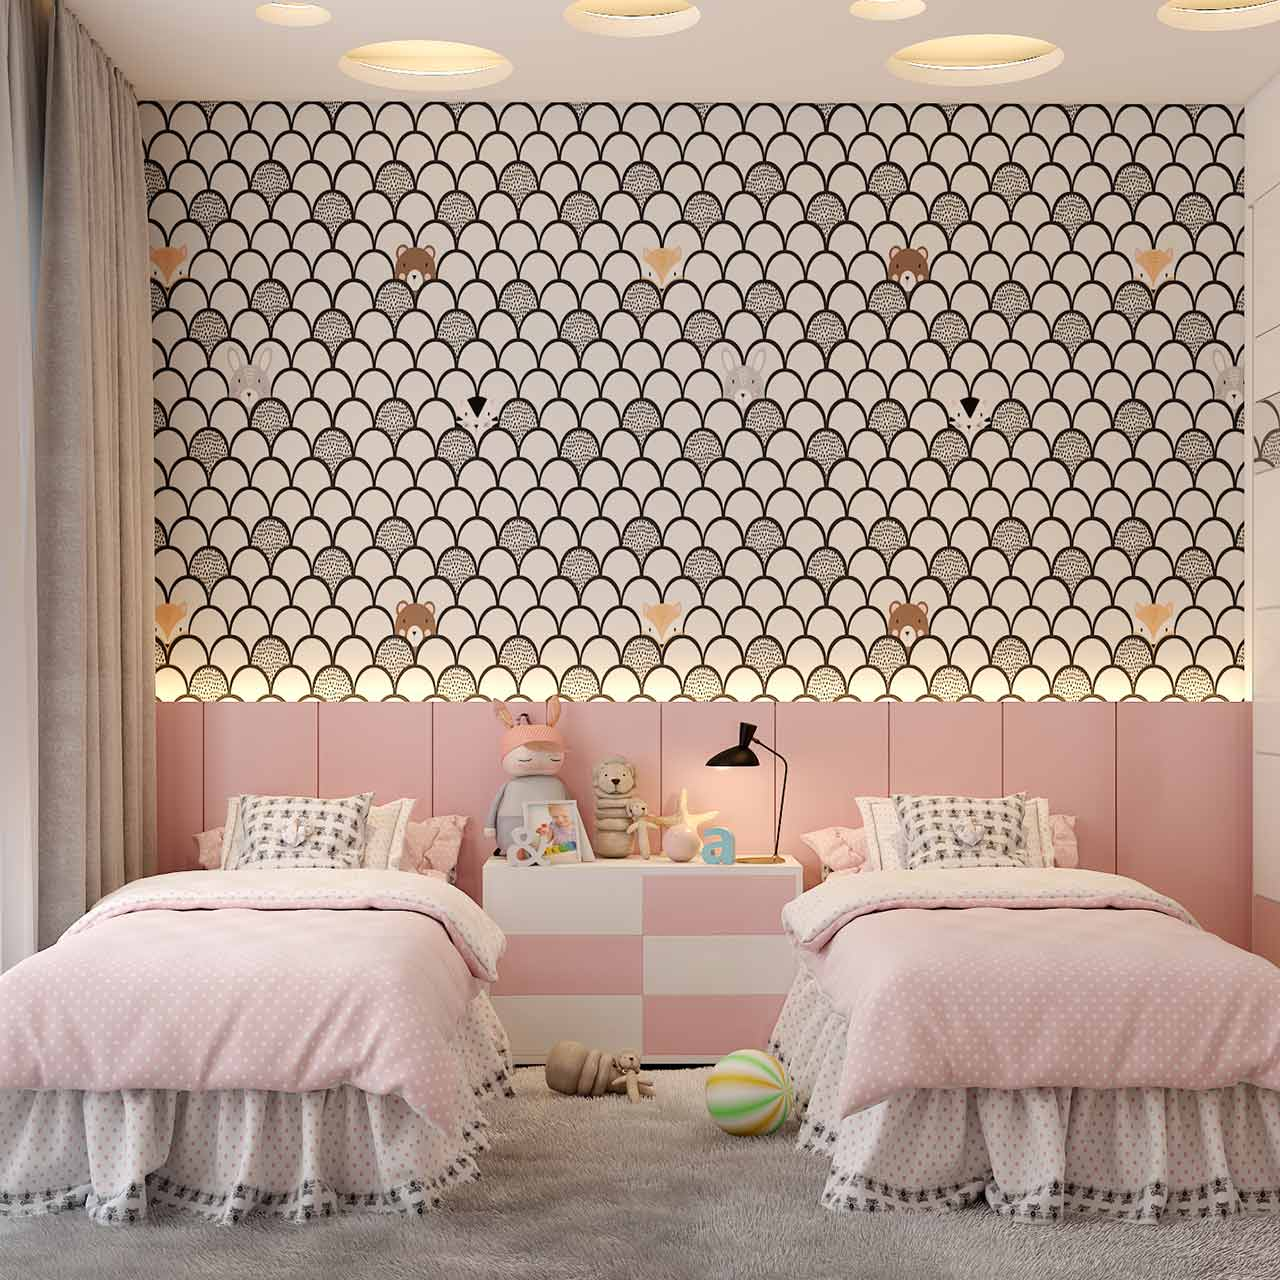 Innovative Kids Bedroom Ideas To Turn It Into A Magical Escapade